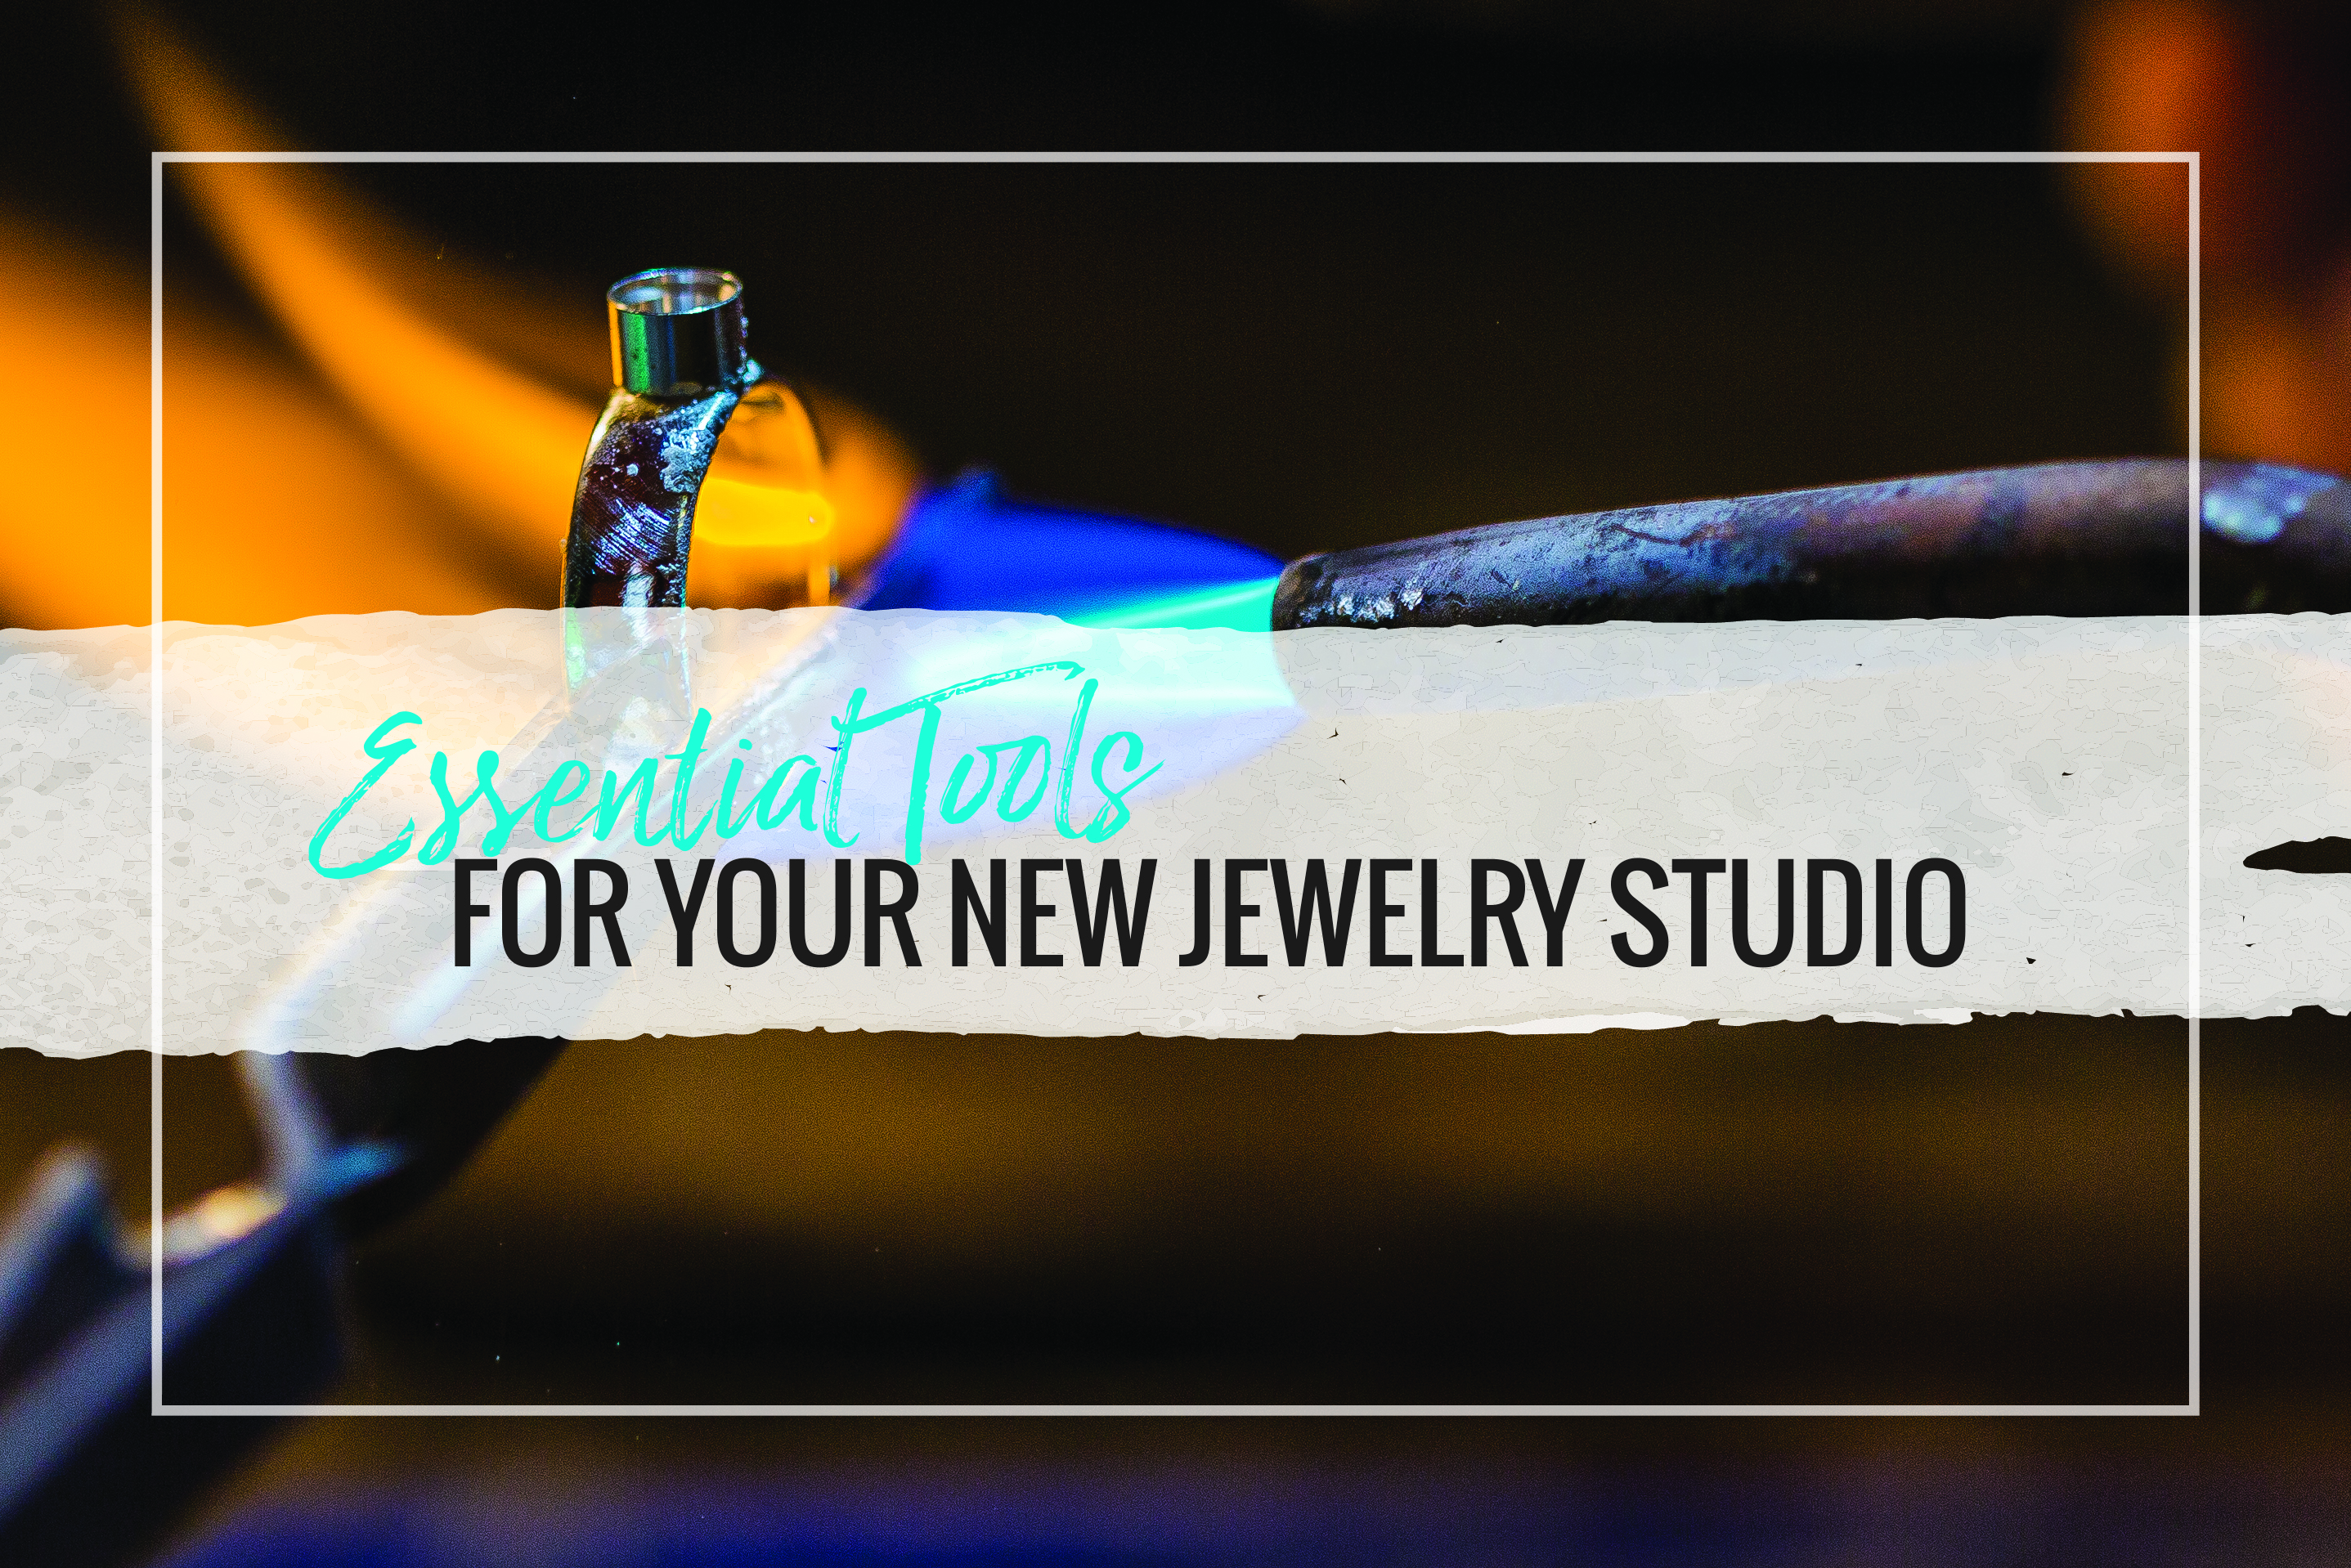 Halstead Jewelry Studio Coordinator Erica Stice lists her recommendations for the most essential tools to get for your new jewelry studio space.